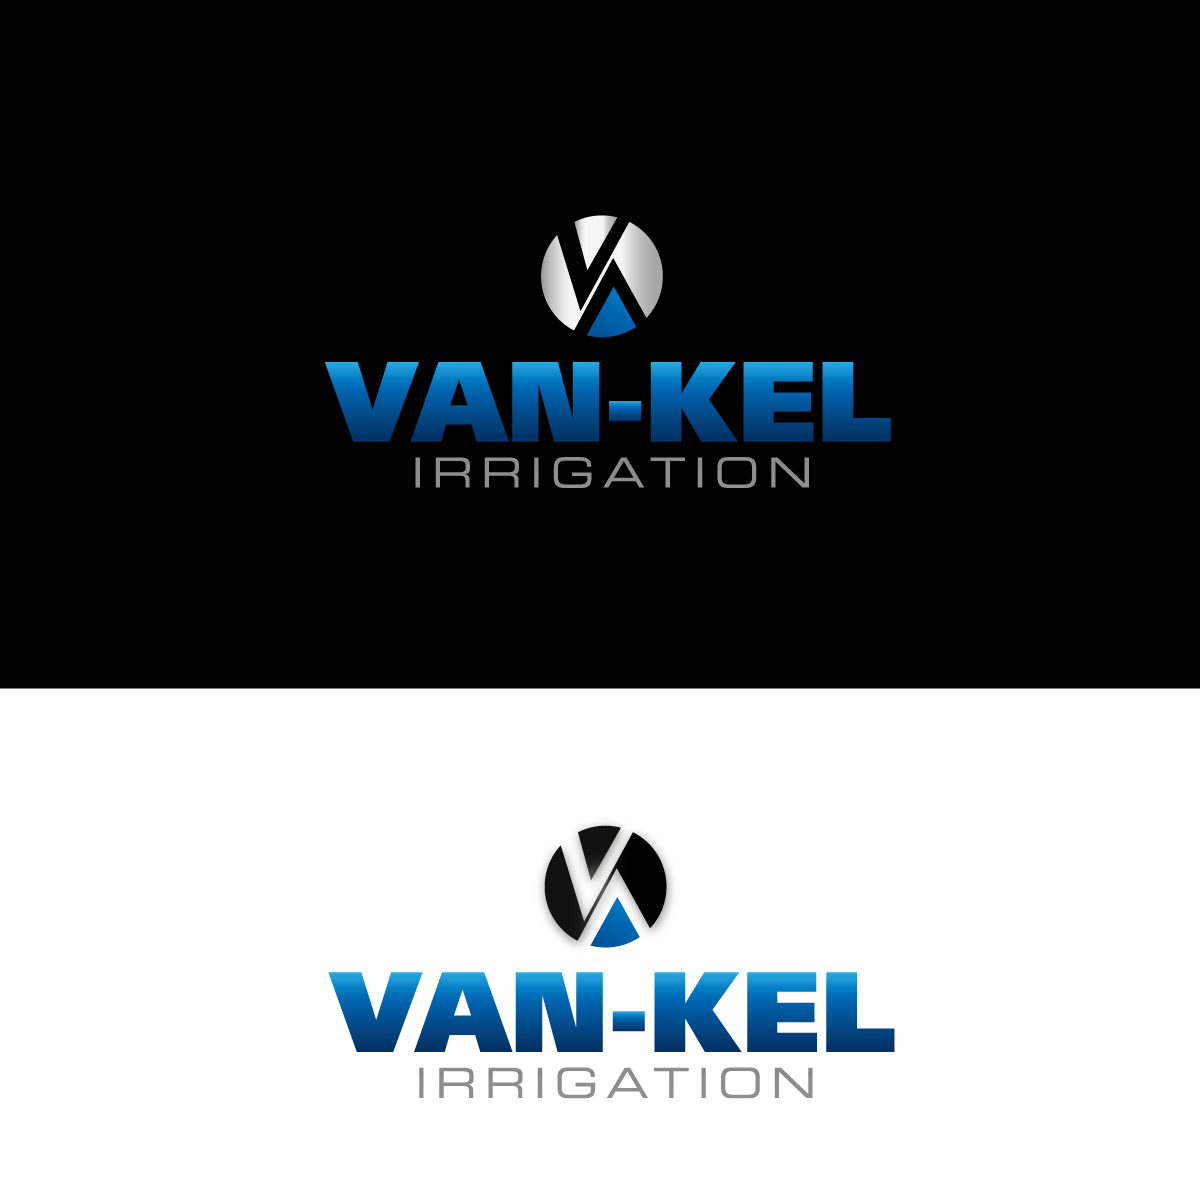 Logo Design by rockin - Entry No. 183 in the Logo Design Contest Van-Kel Irrigation Logo Design.